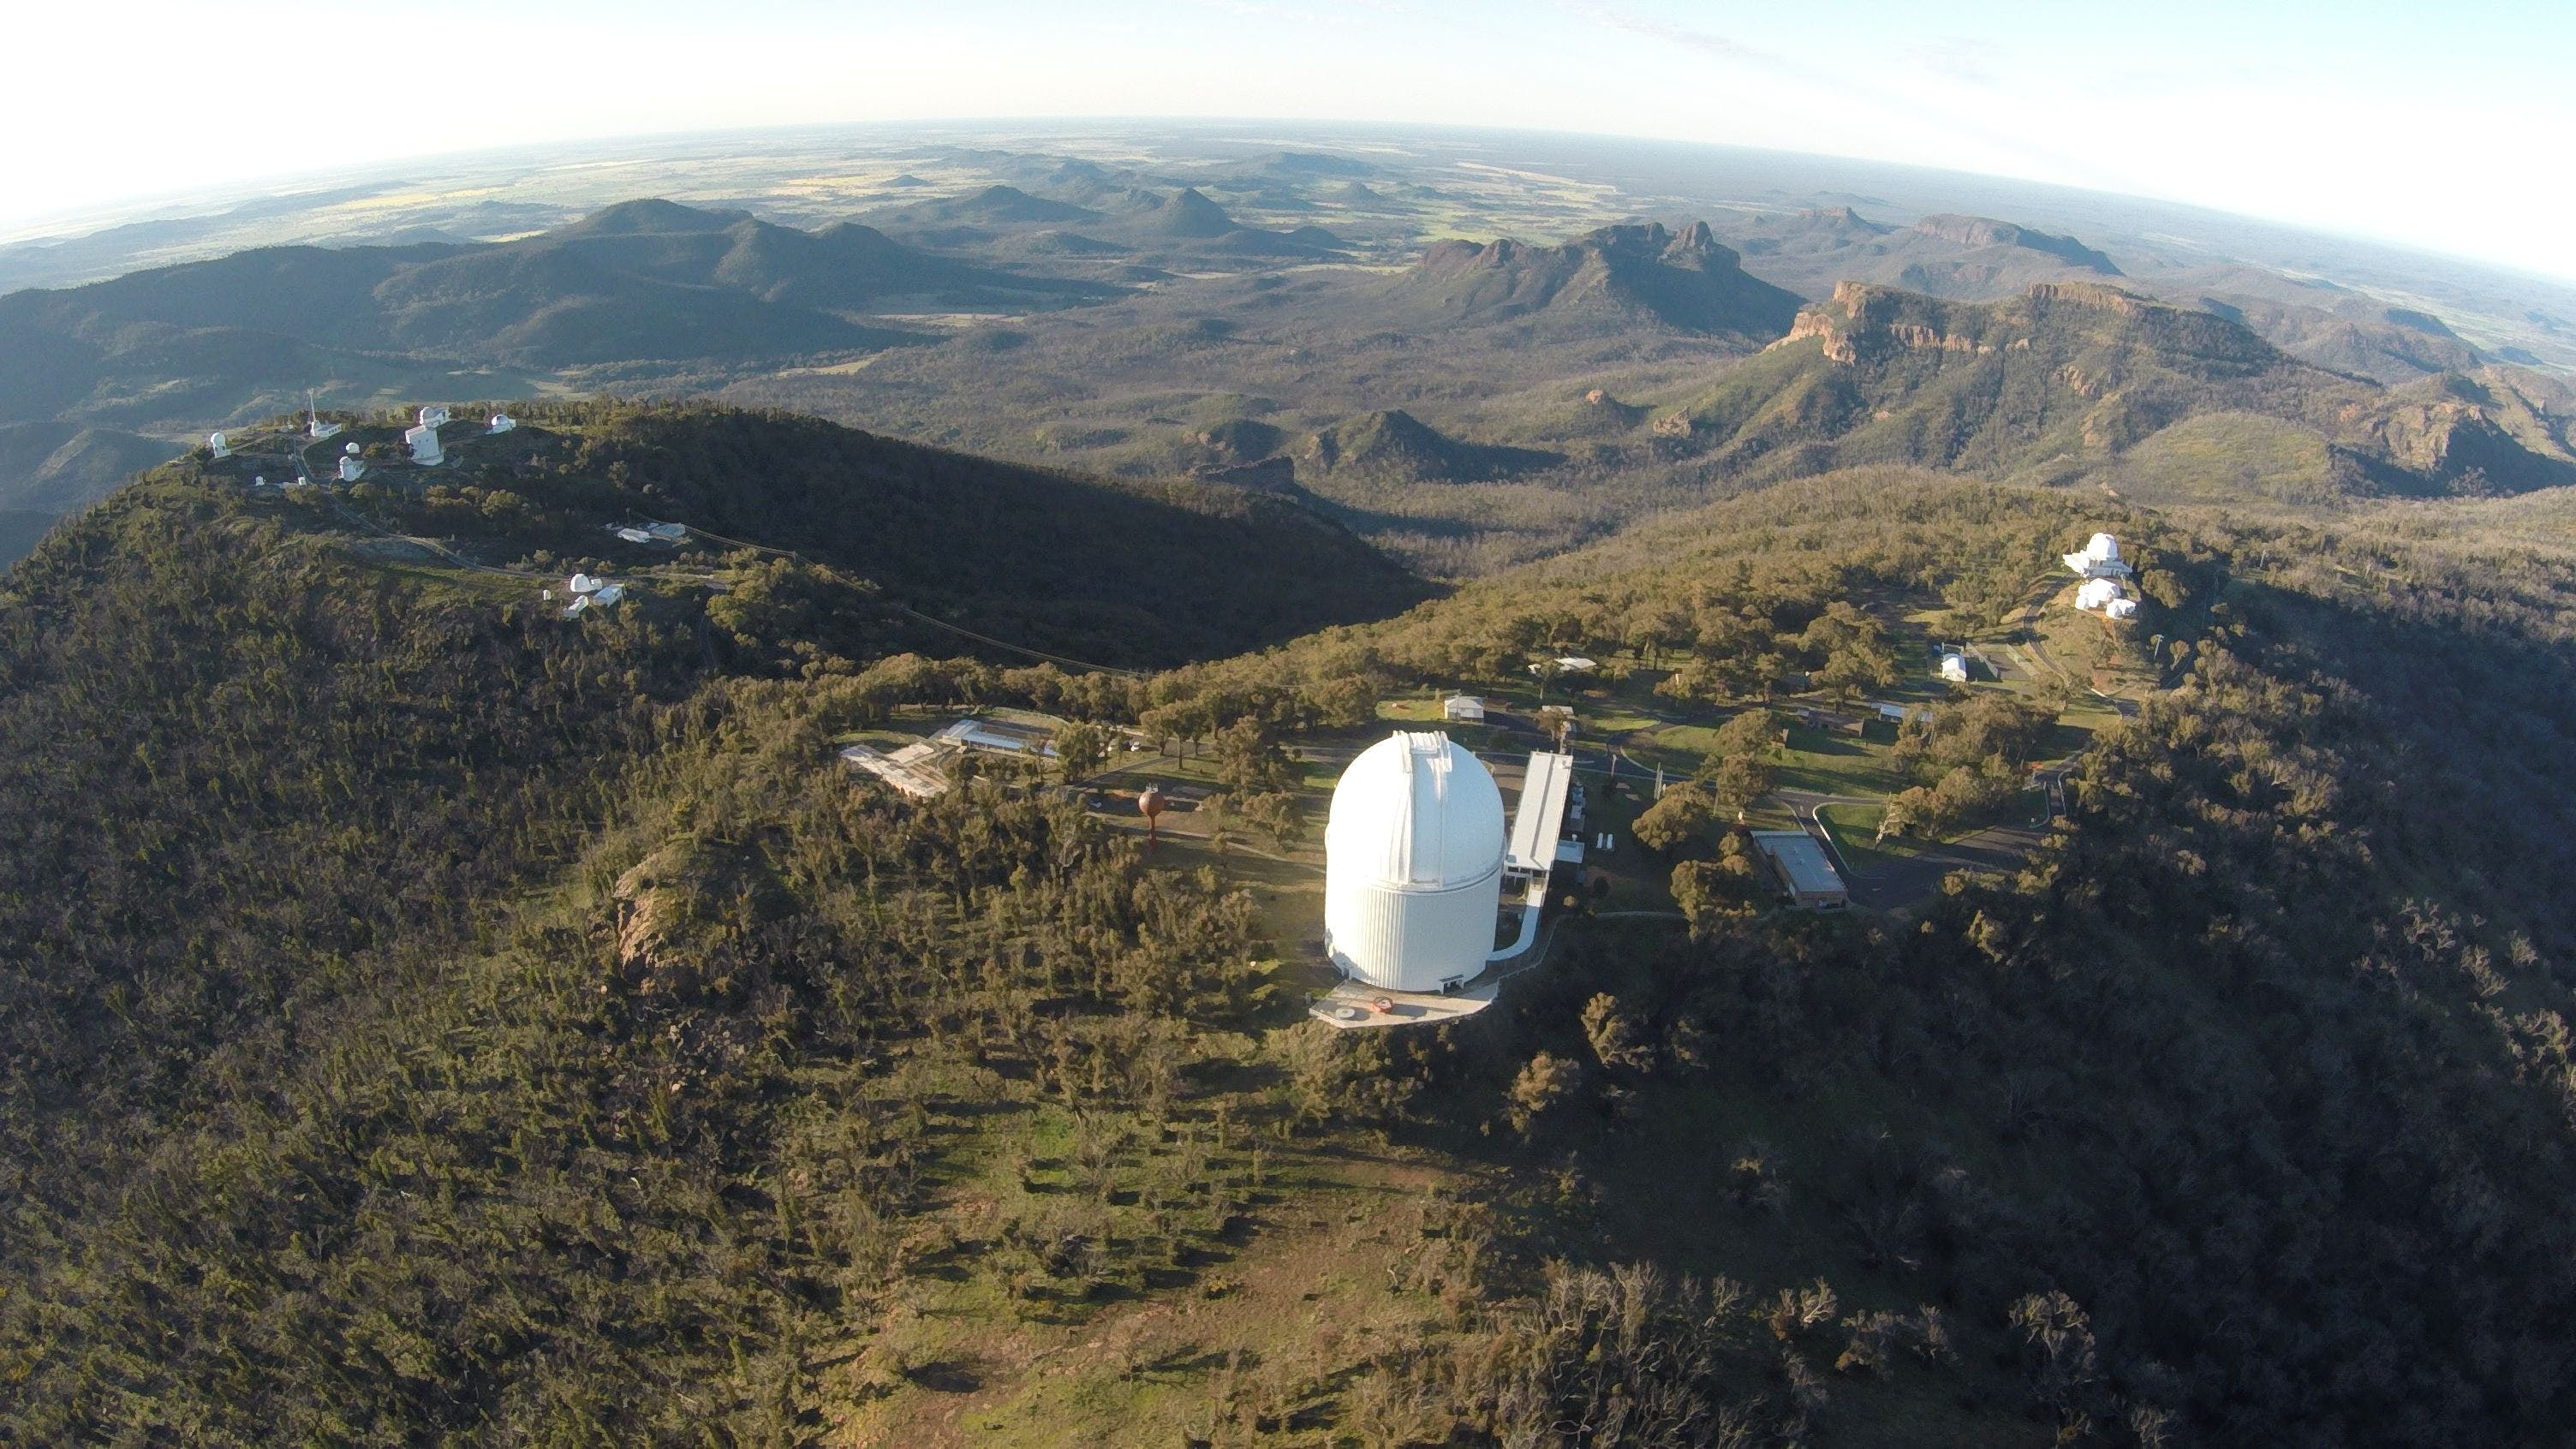 Siding Spring Observatory - Attractions